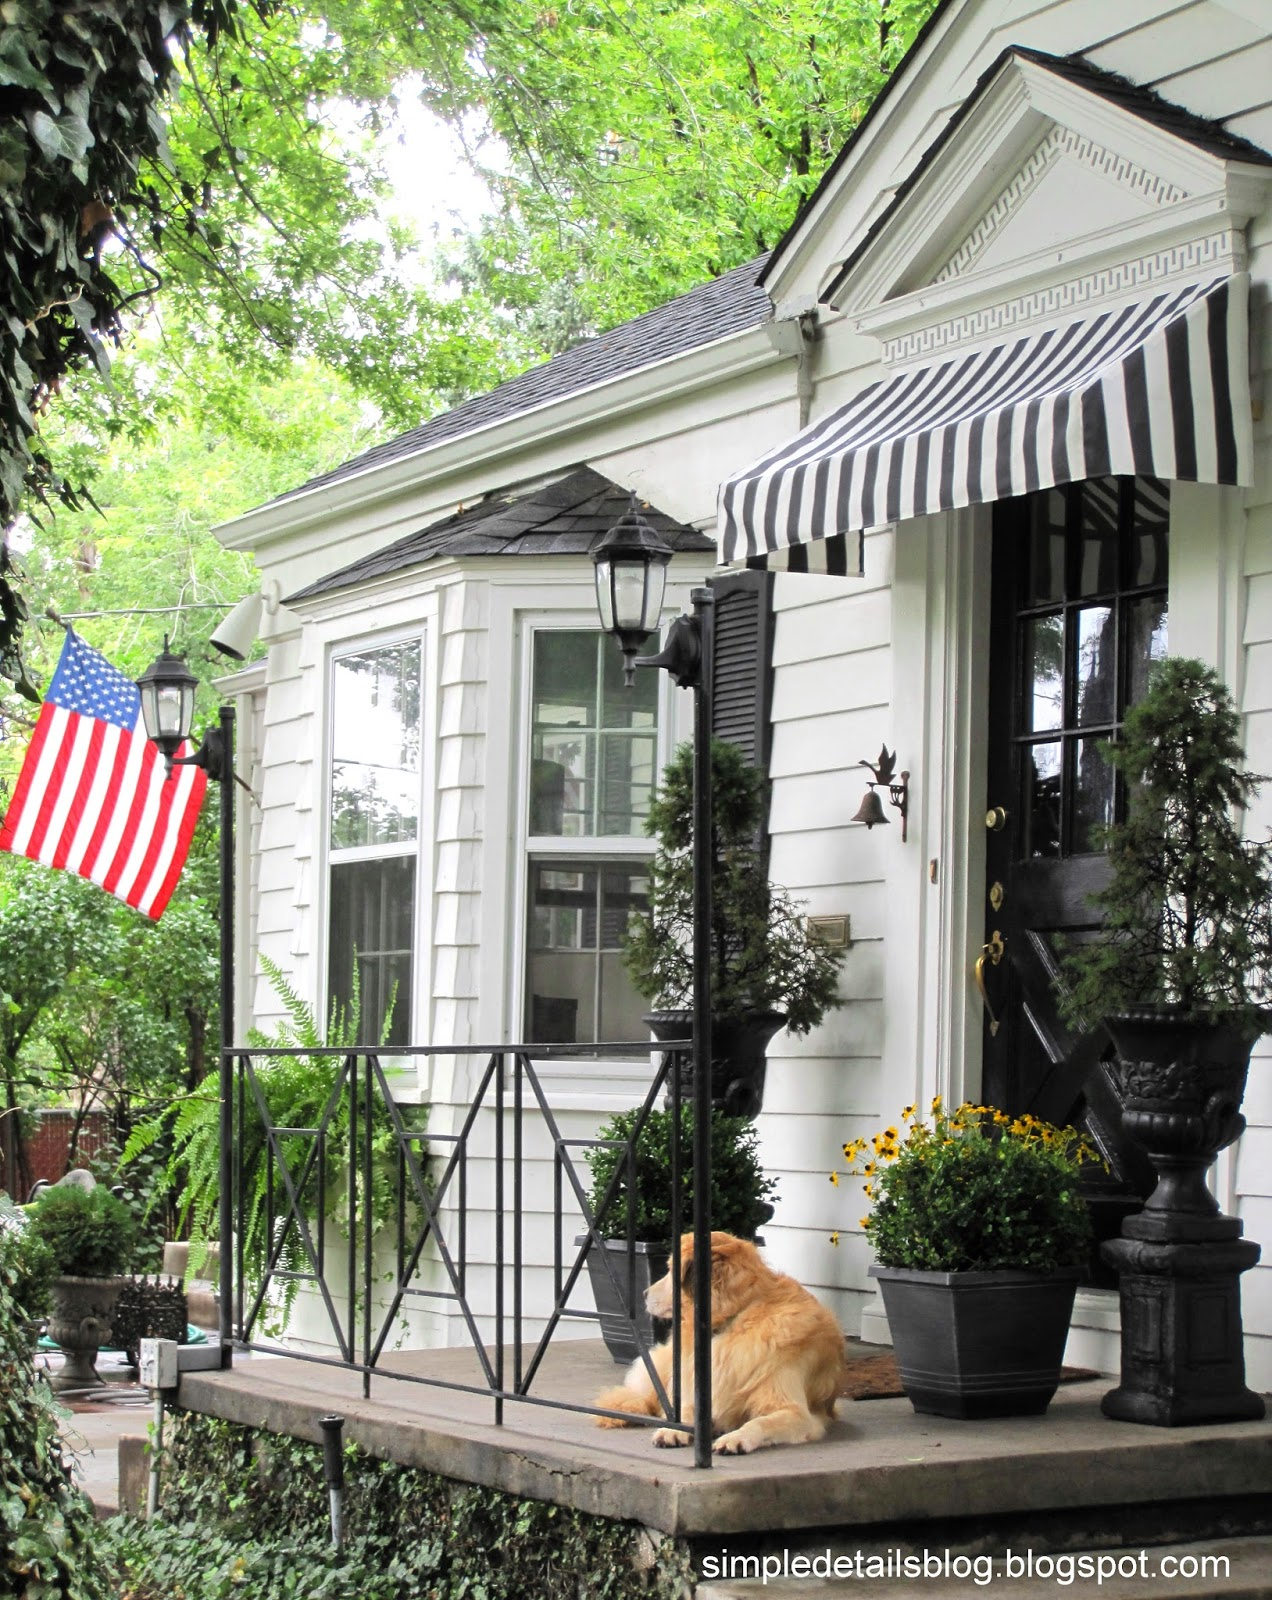 Simple Details Diy Black And White Awning Reveal